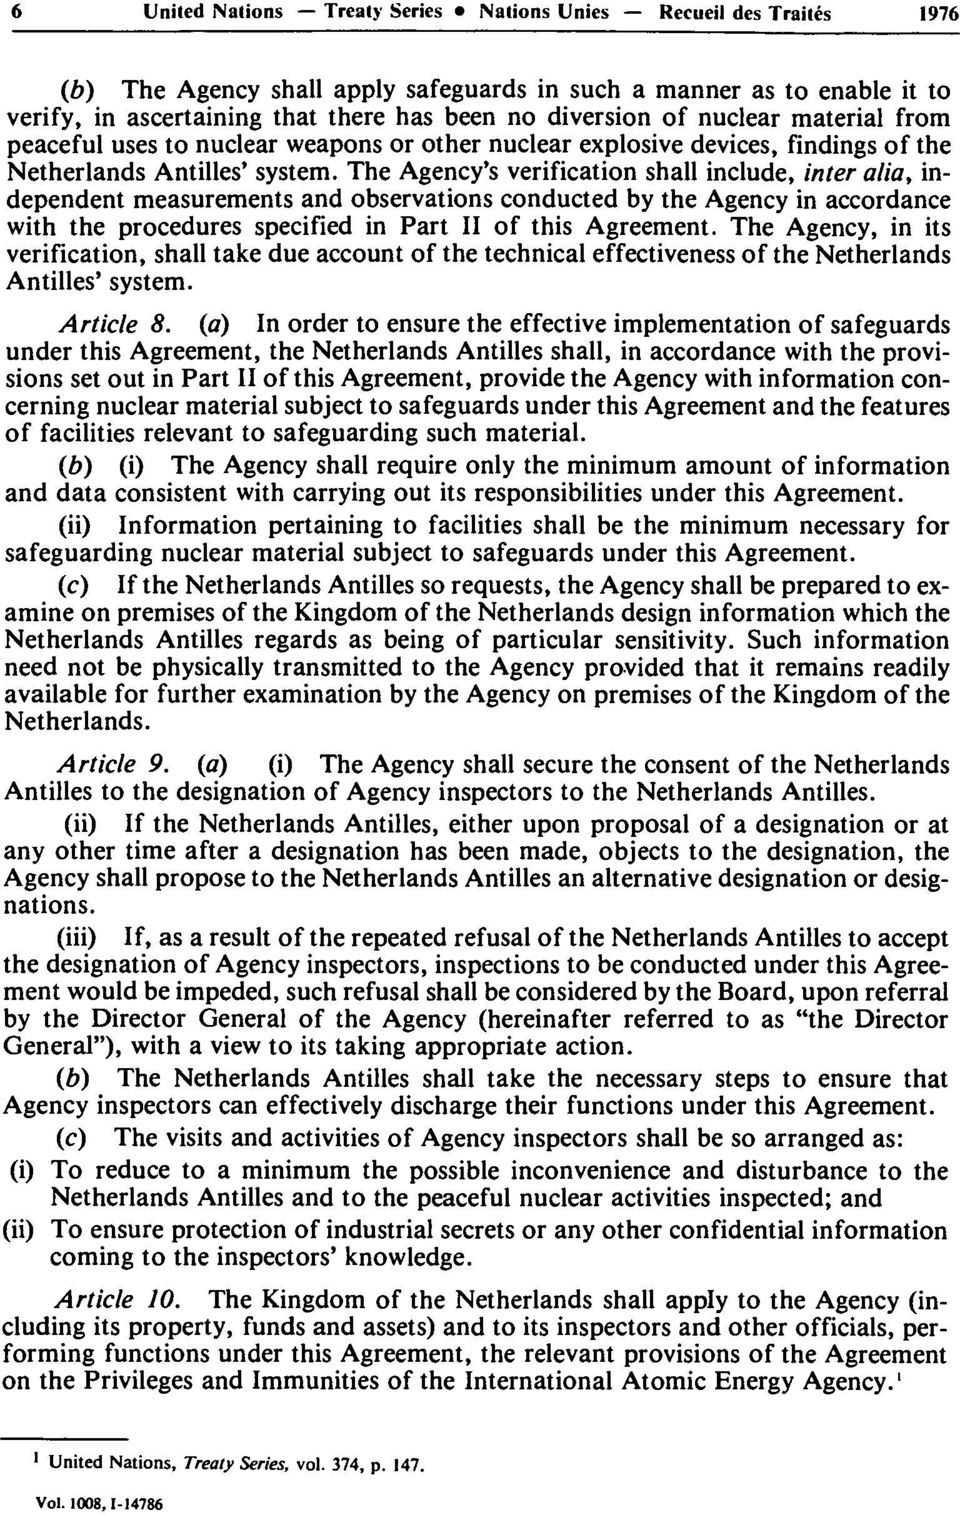 The Agency's verification shall include, inter alia, independent measurements and observations conducted by the Agency in accordance with the procedures specified in Part II of this Agreement.